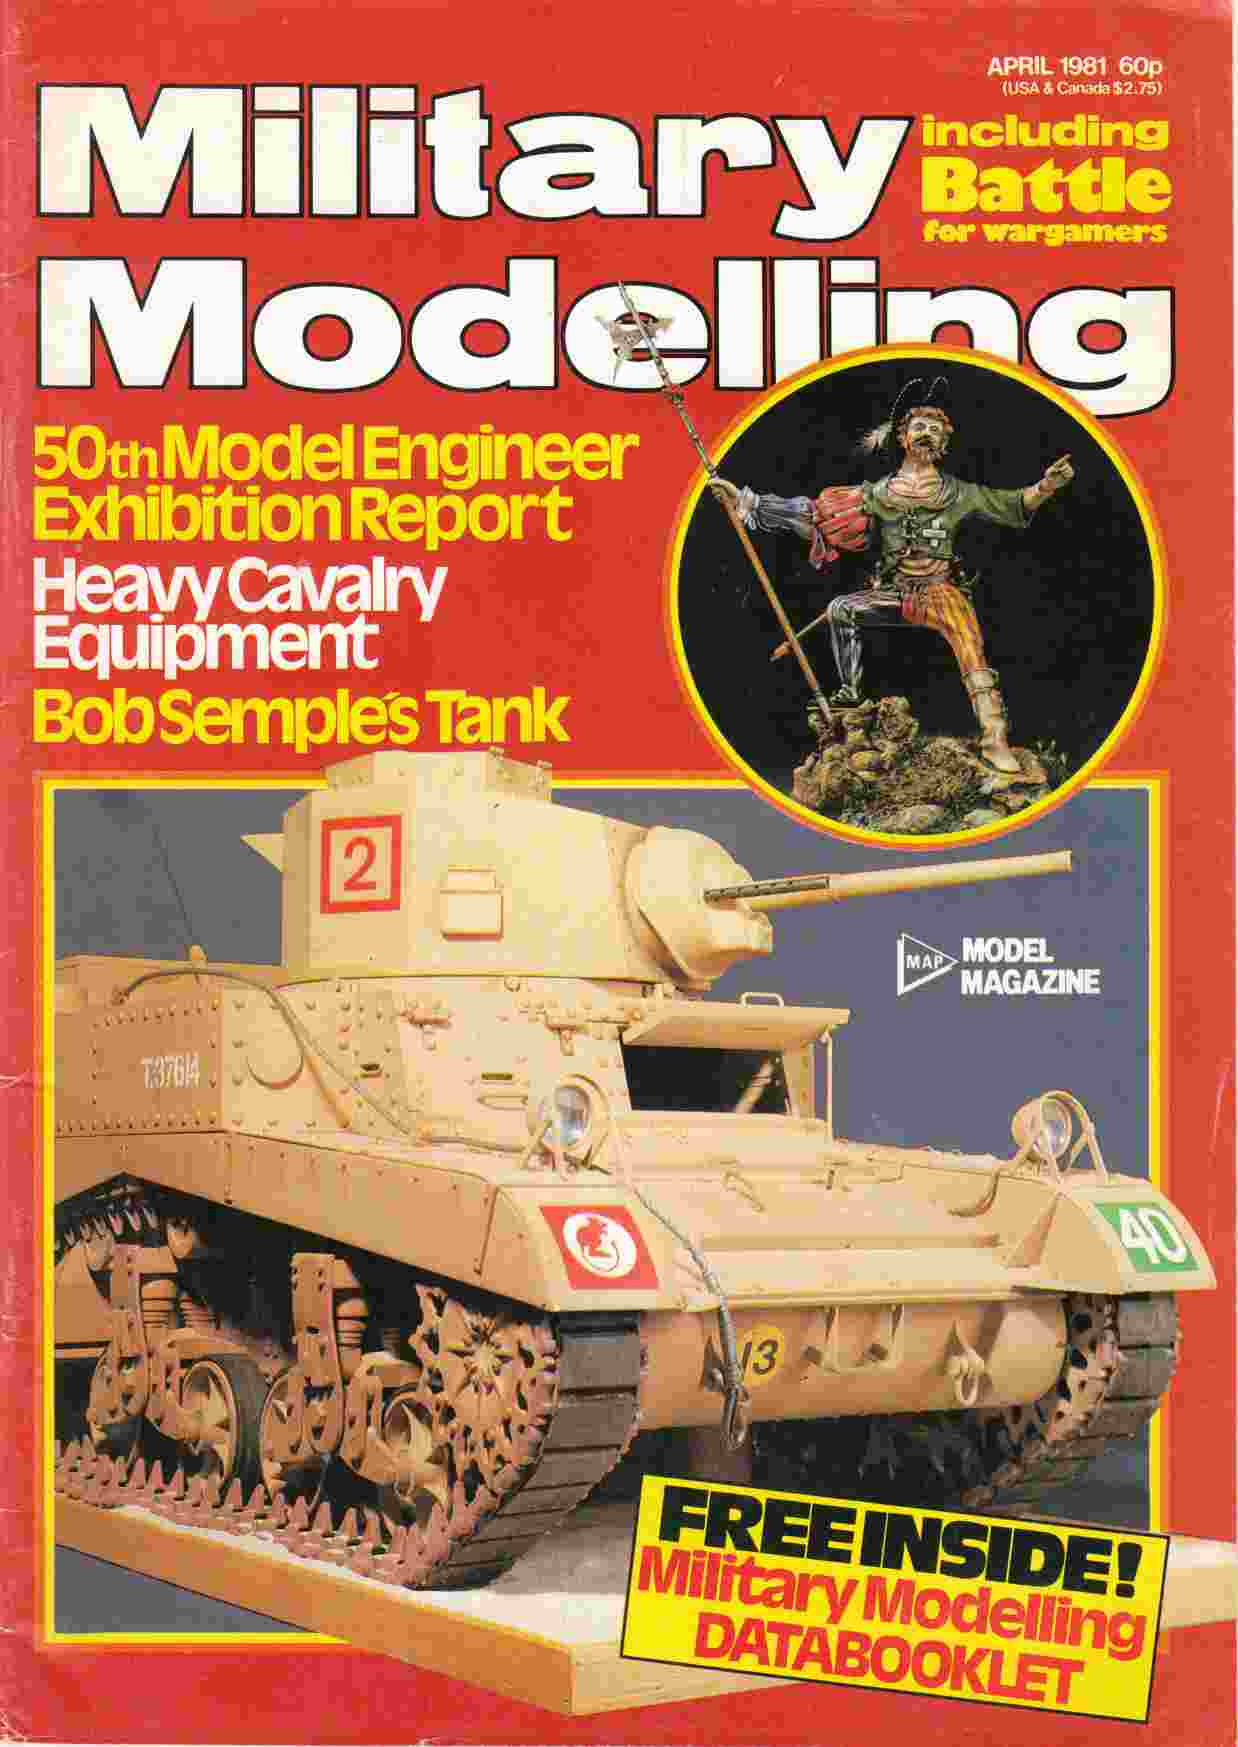 Image for Military Modelling Vol. 11 No. 4 April 1981